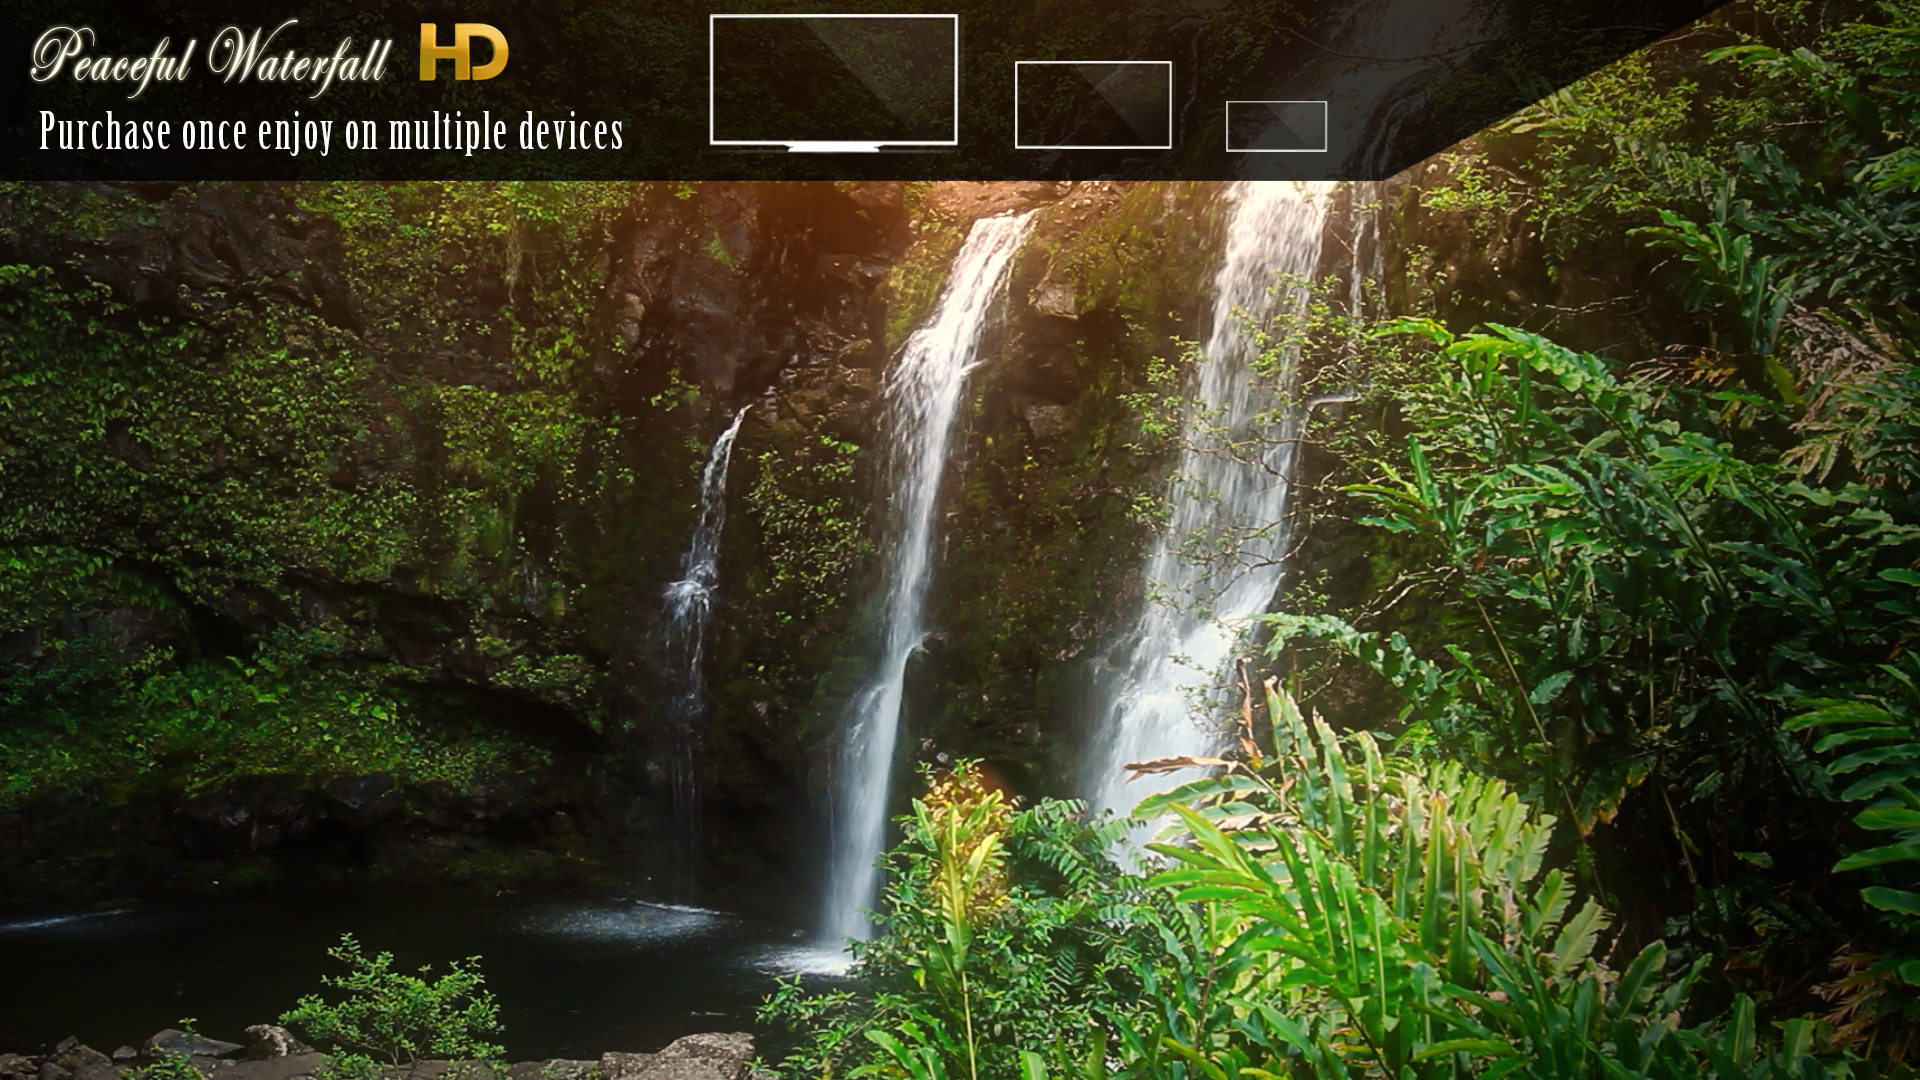 Peaceful Waterfall HD screenshot 10